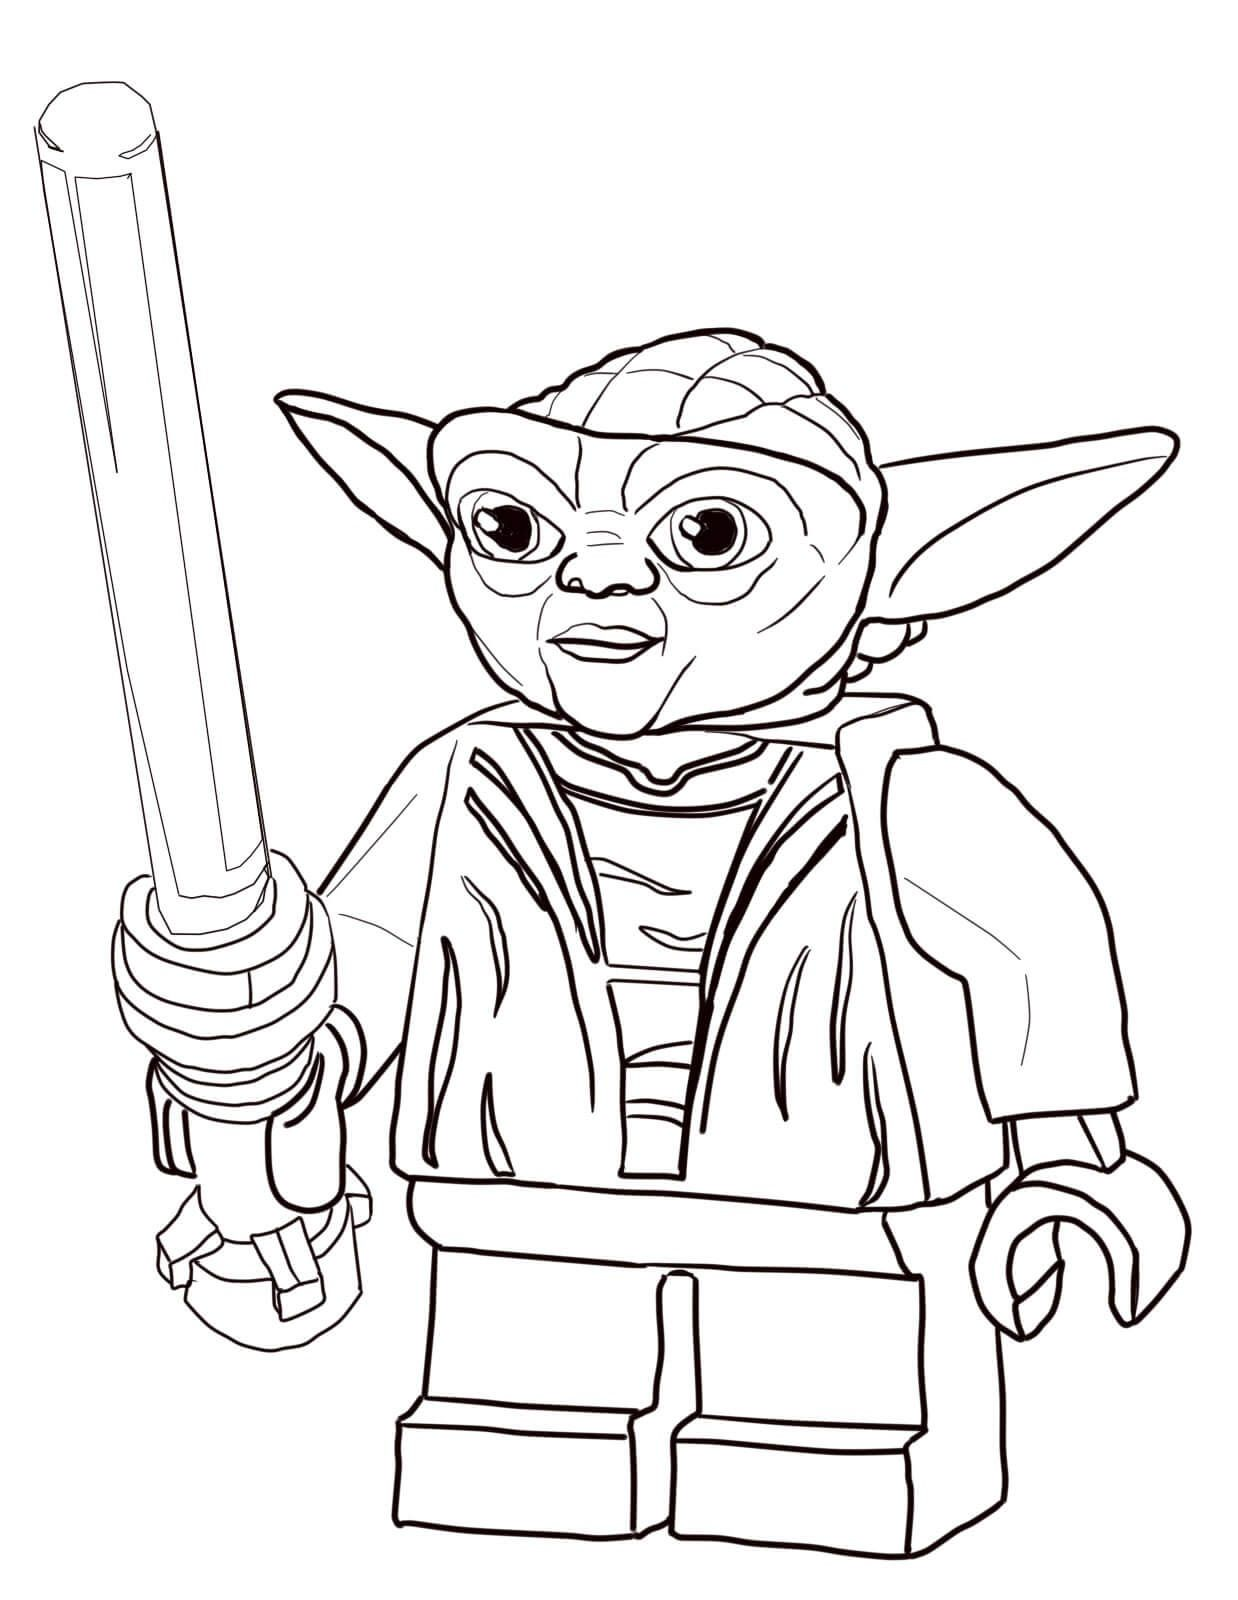 Lego Star Wars Coloring Pages for Relaxing Lego coloring